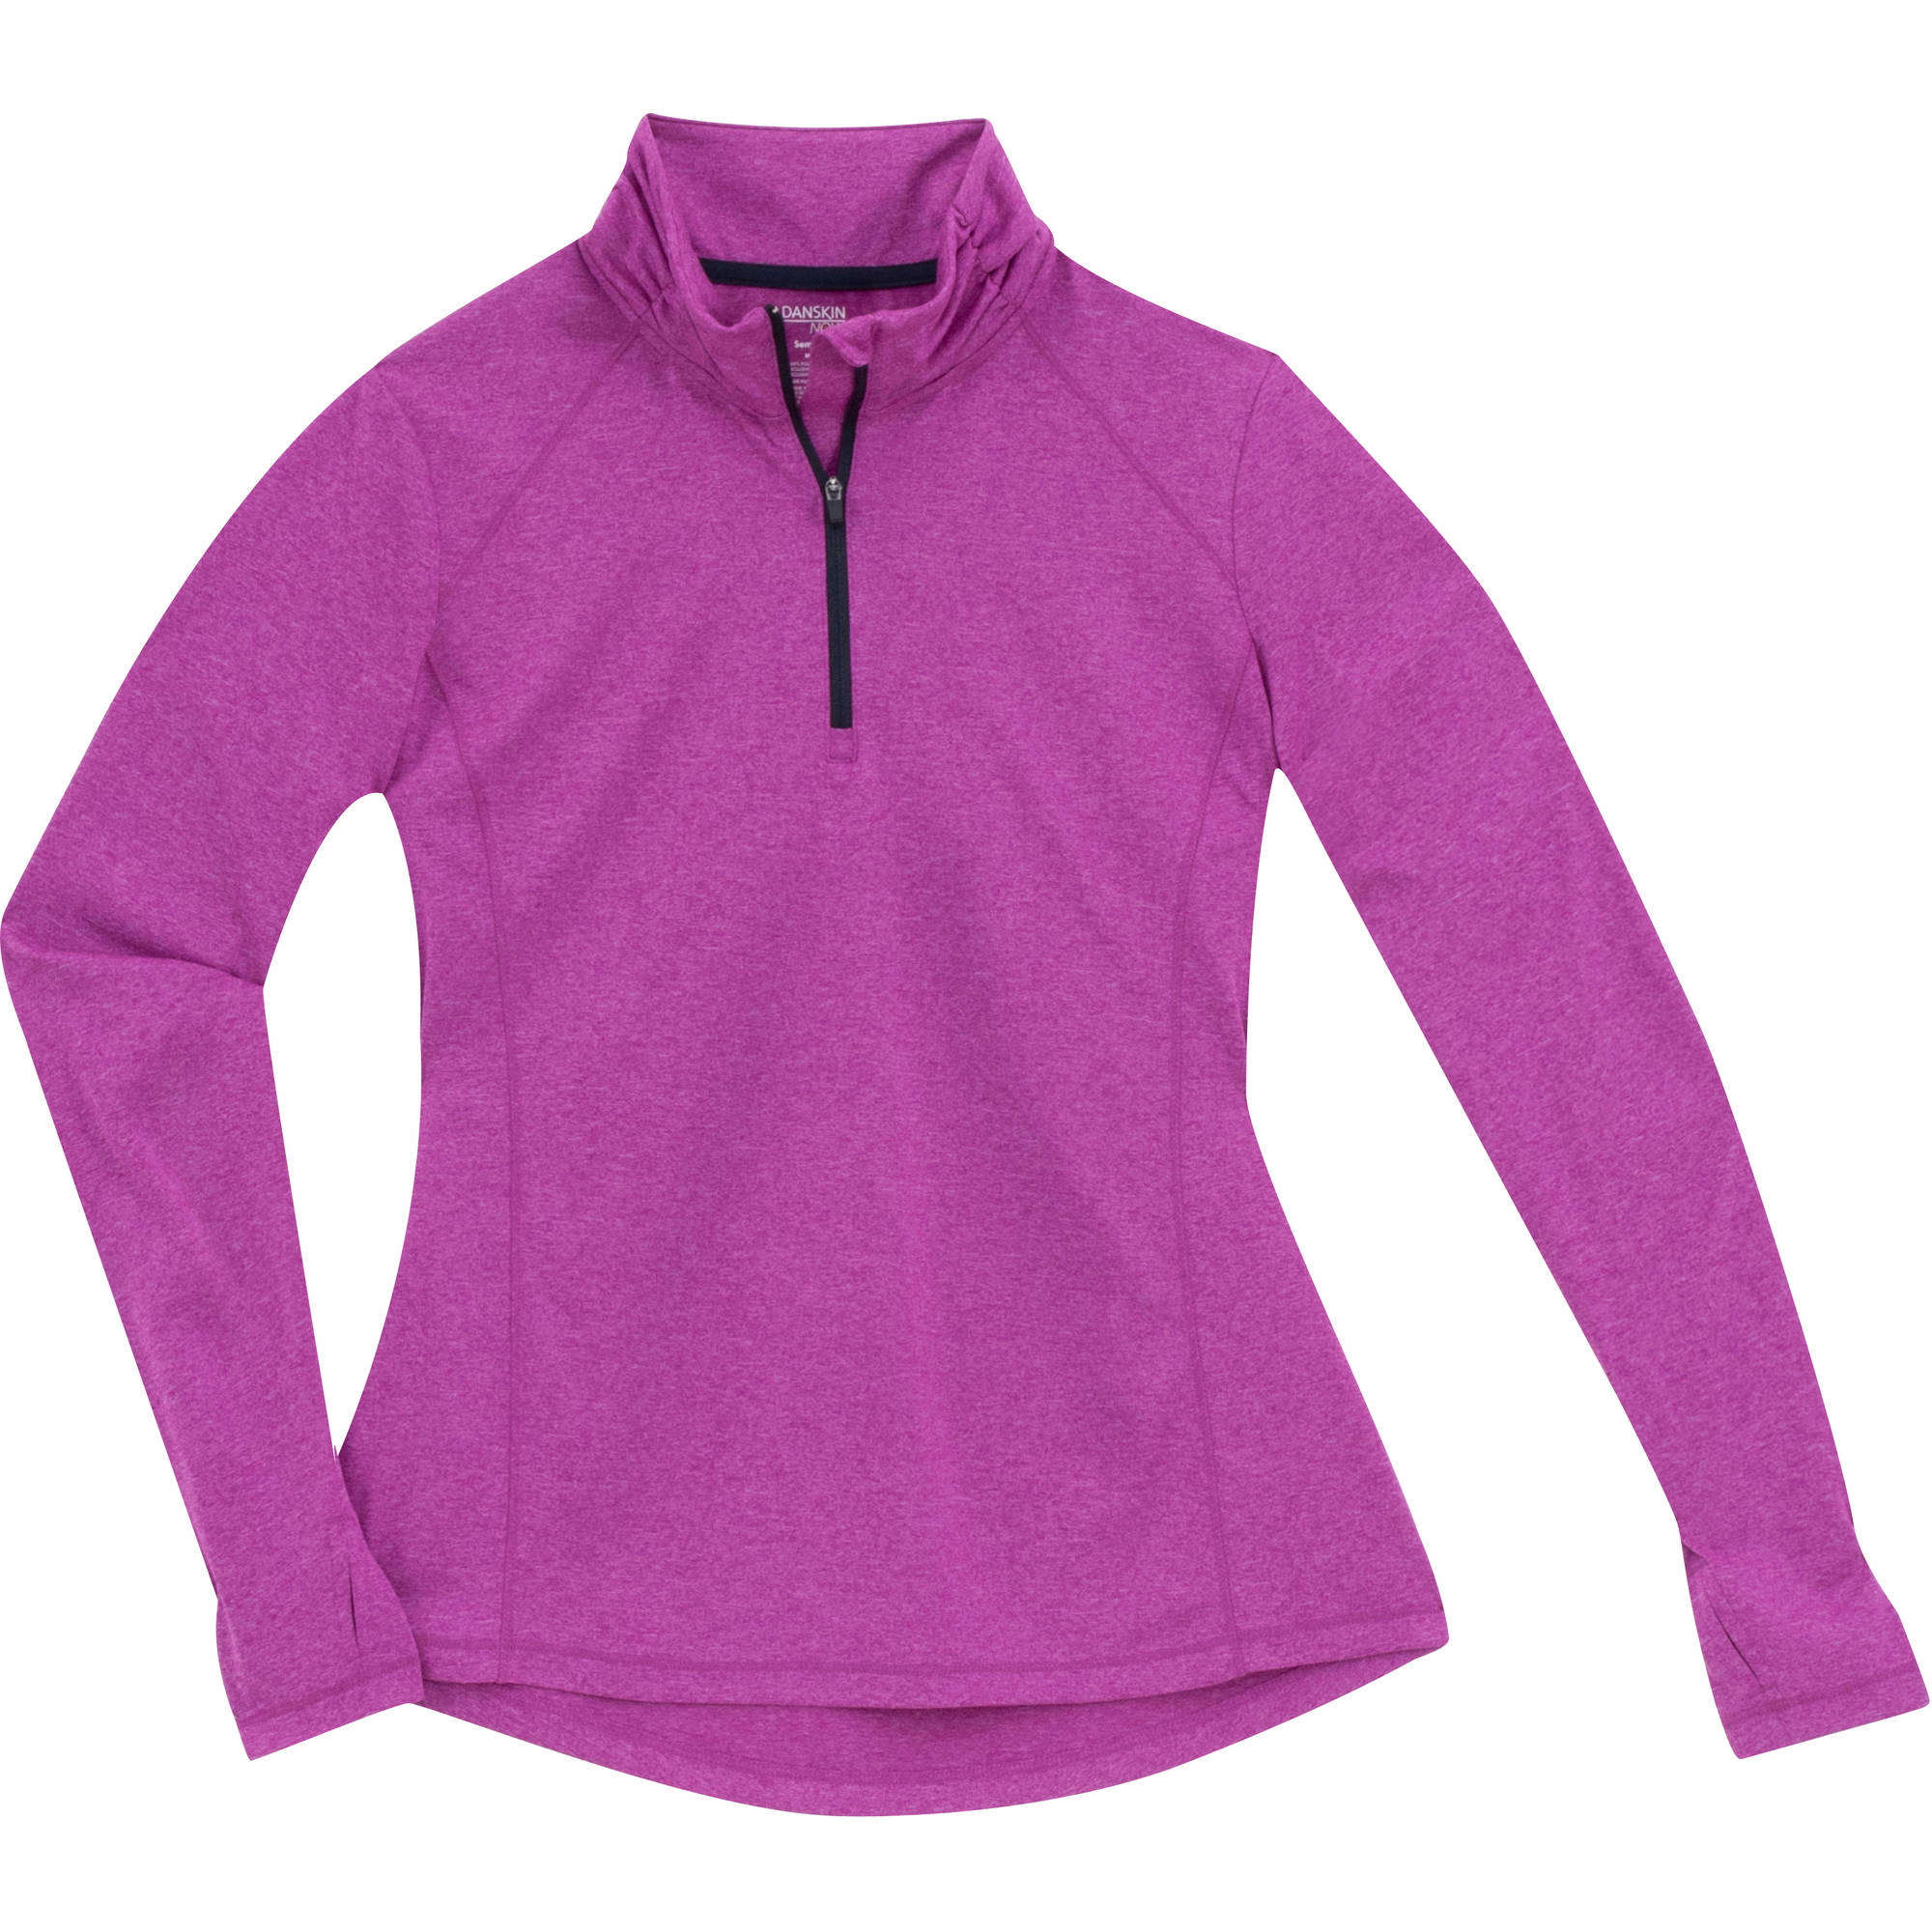 Danskin Now Danskin 1/4 Zip Top